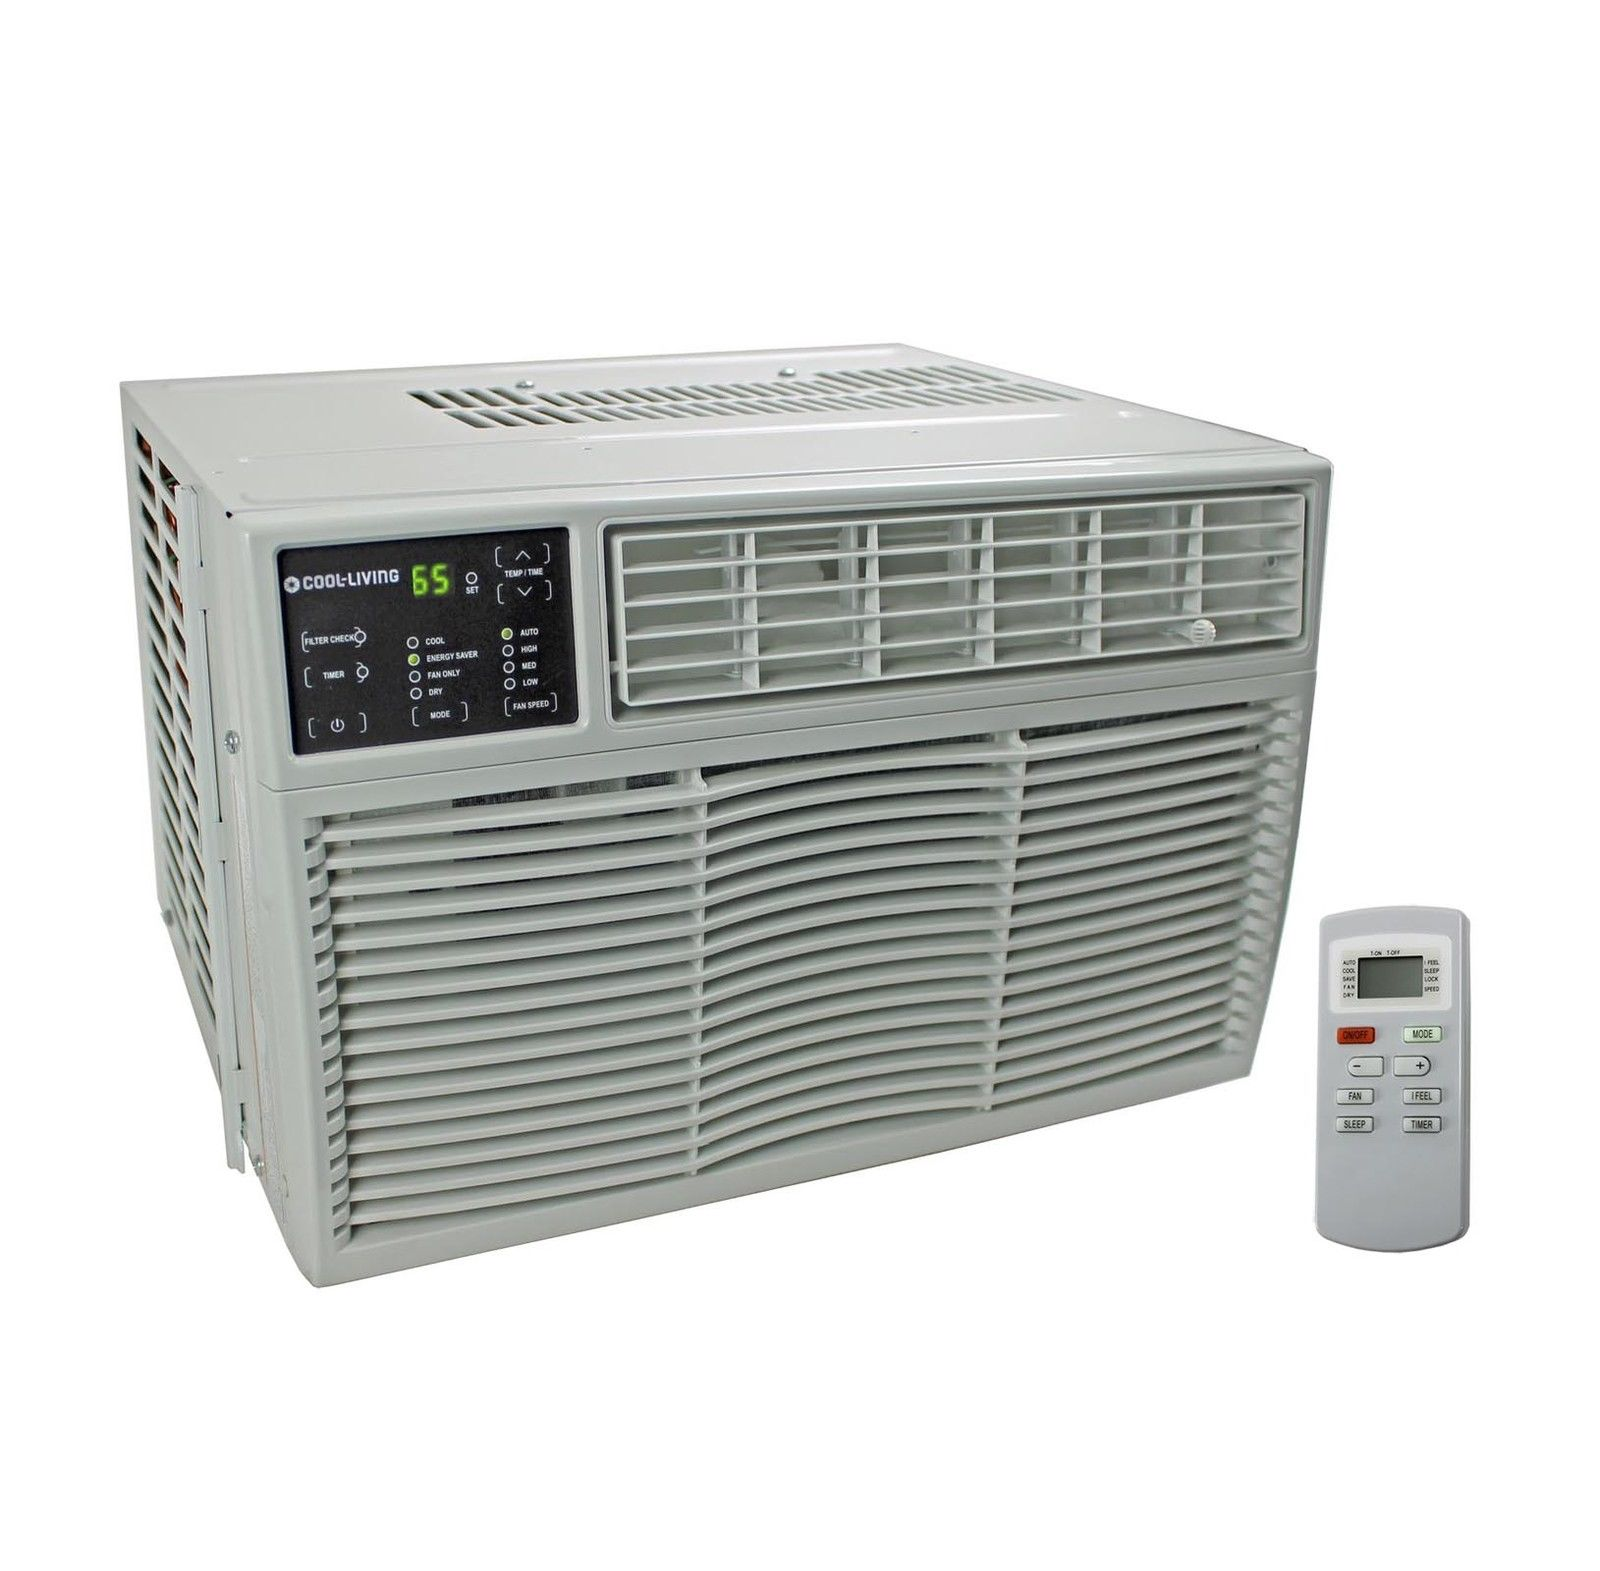 Cool living cl wac 15 electronic window air conditioner for Window unit air conditioner malaysia